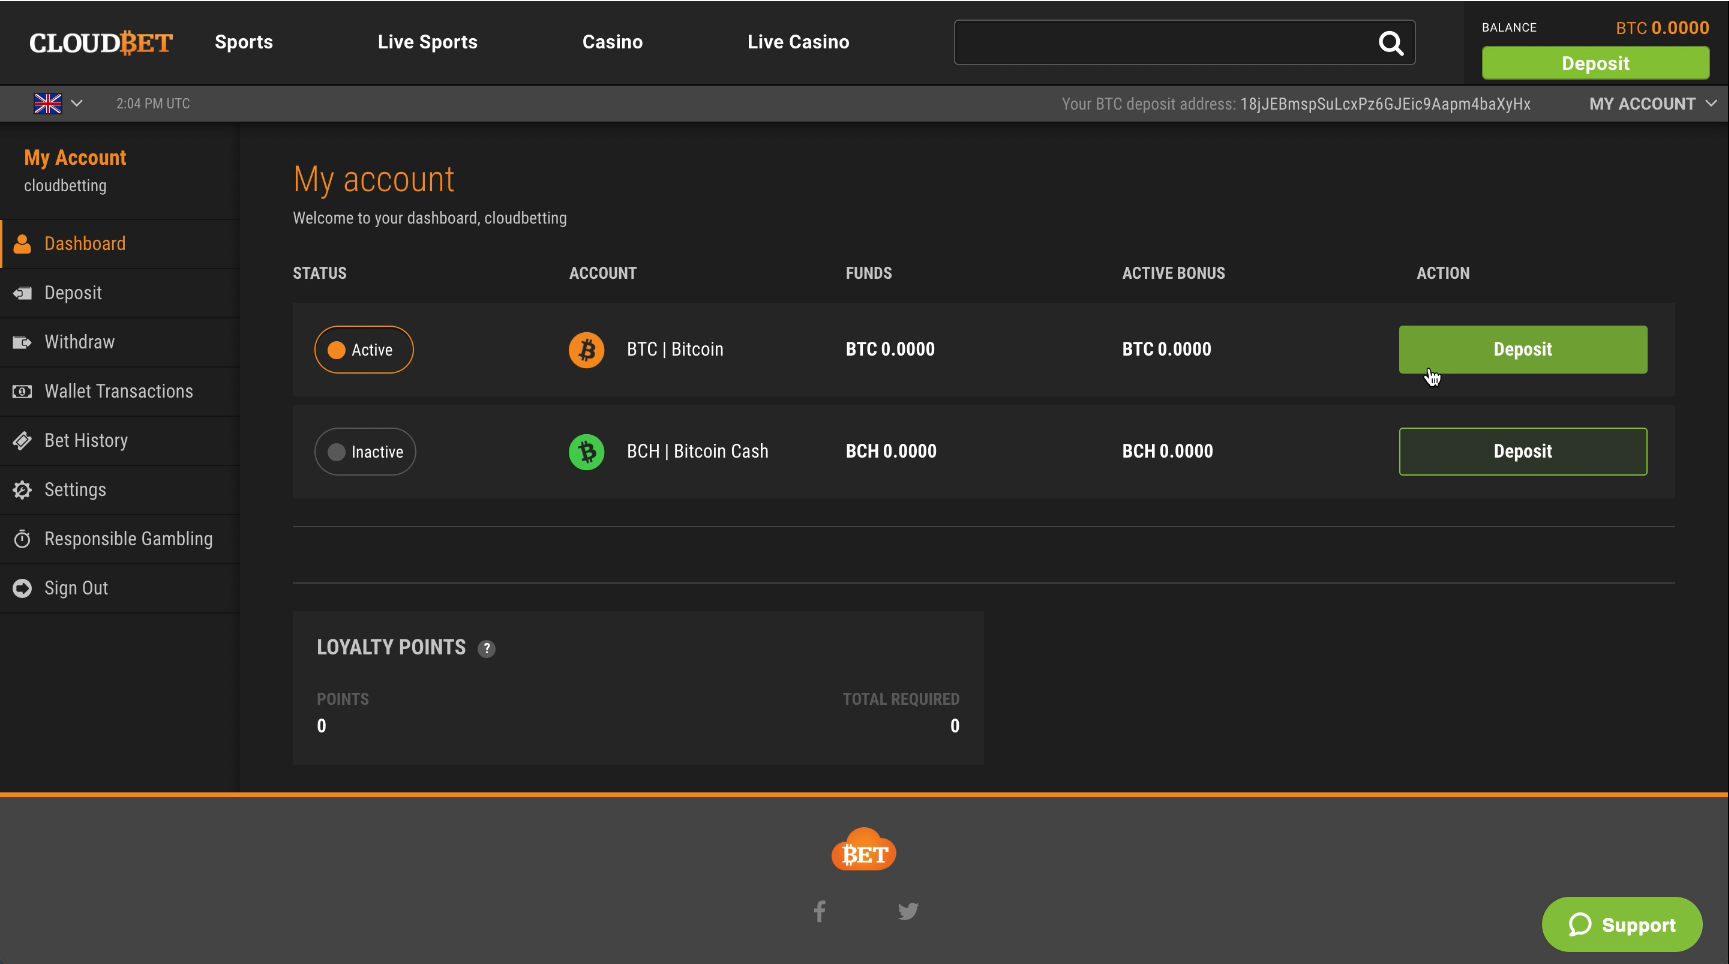 Cloudbet Dashboard